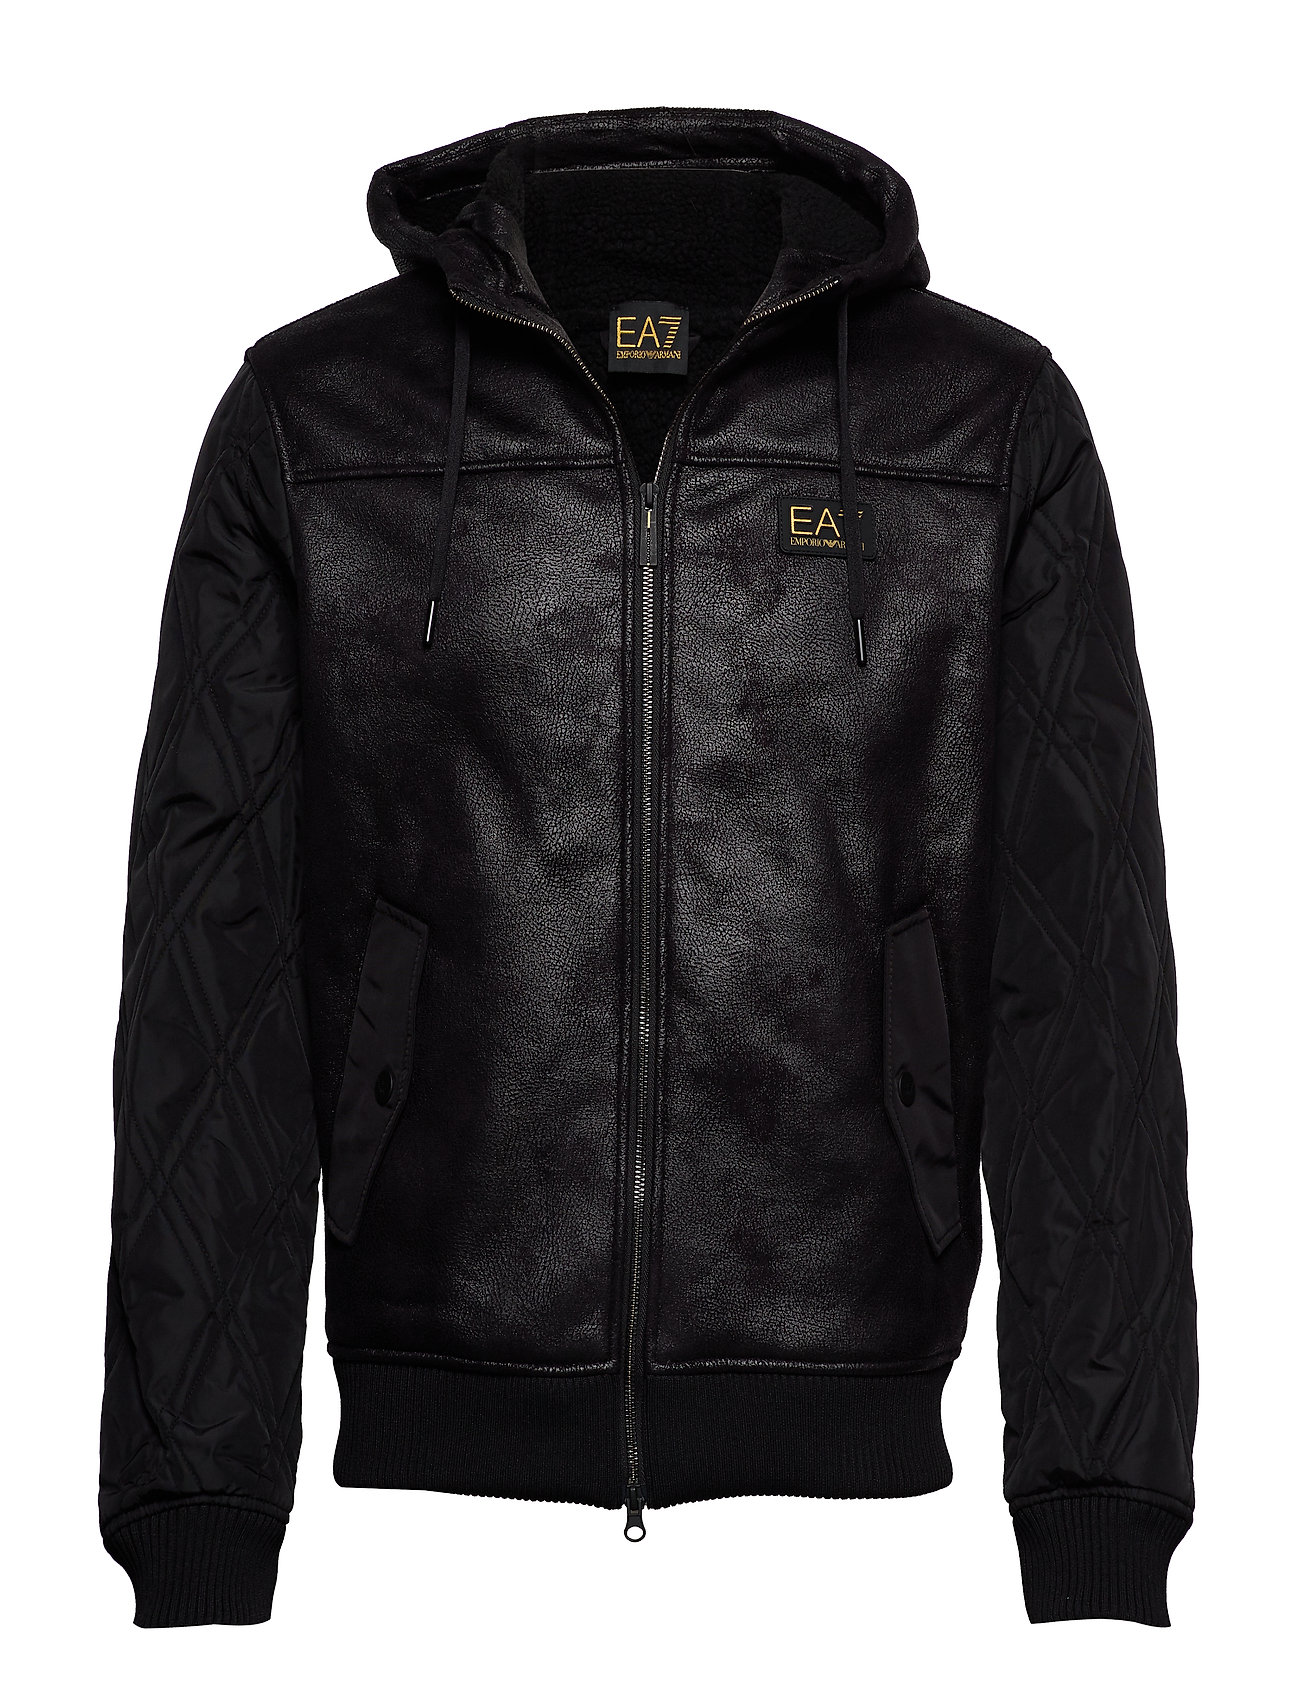 EA7 JACKET - BLACK